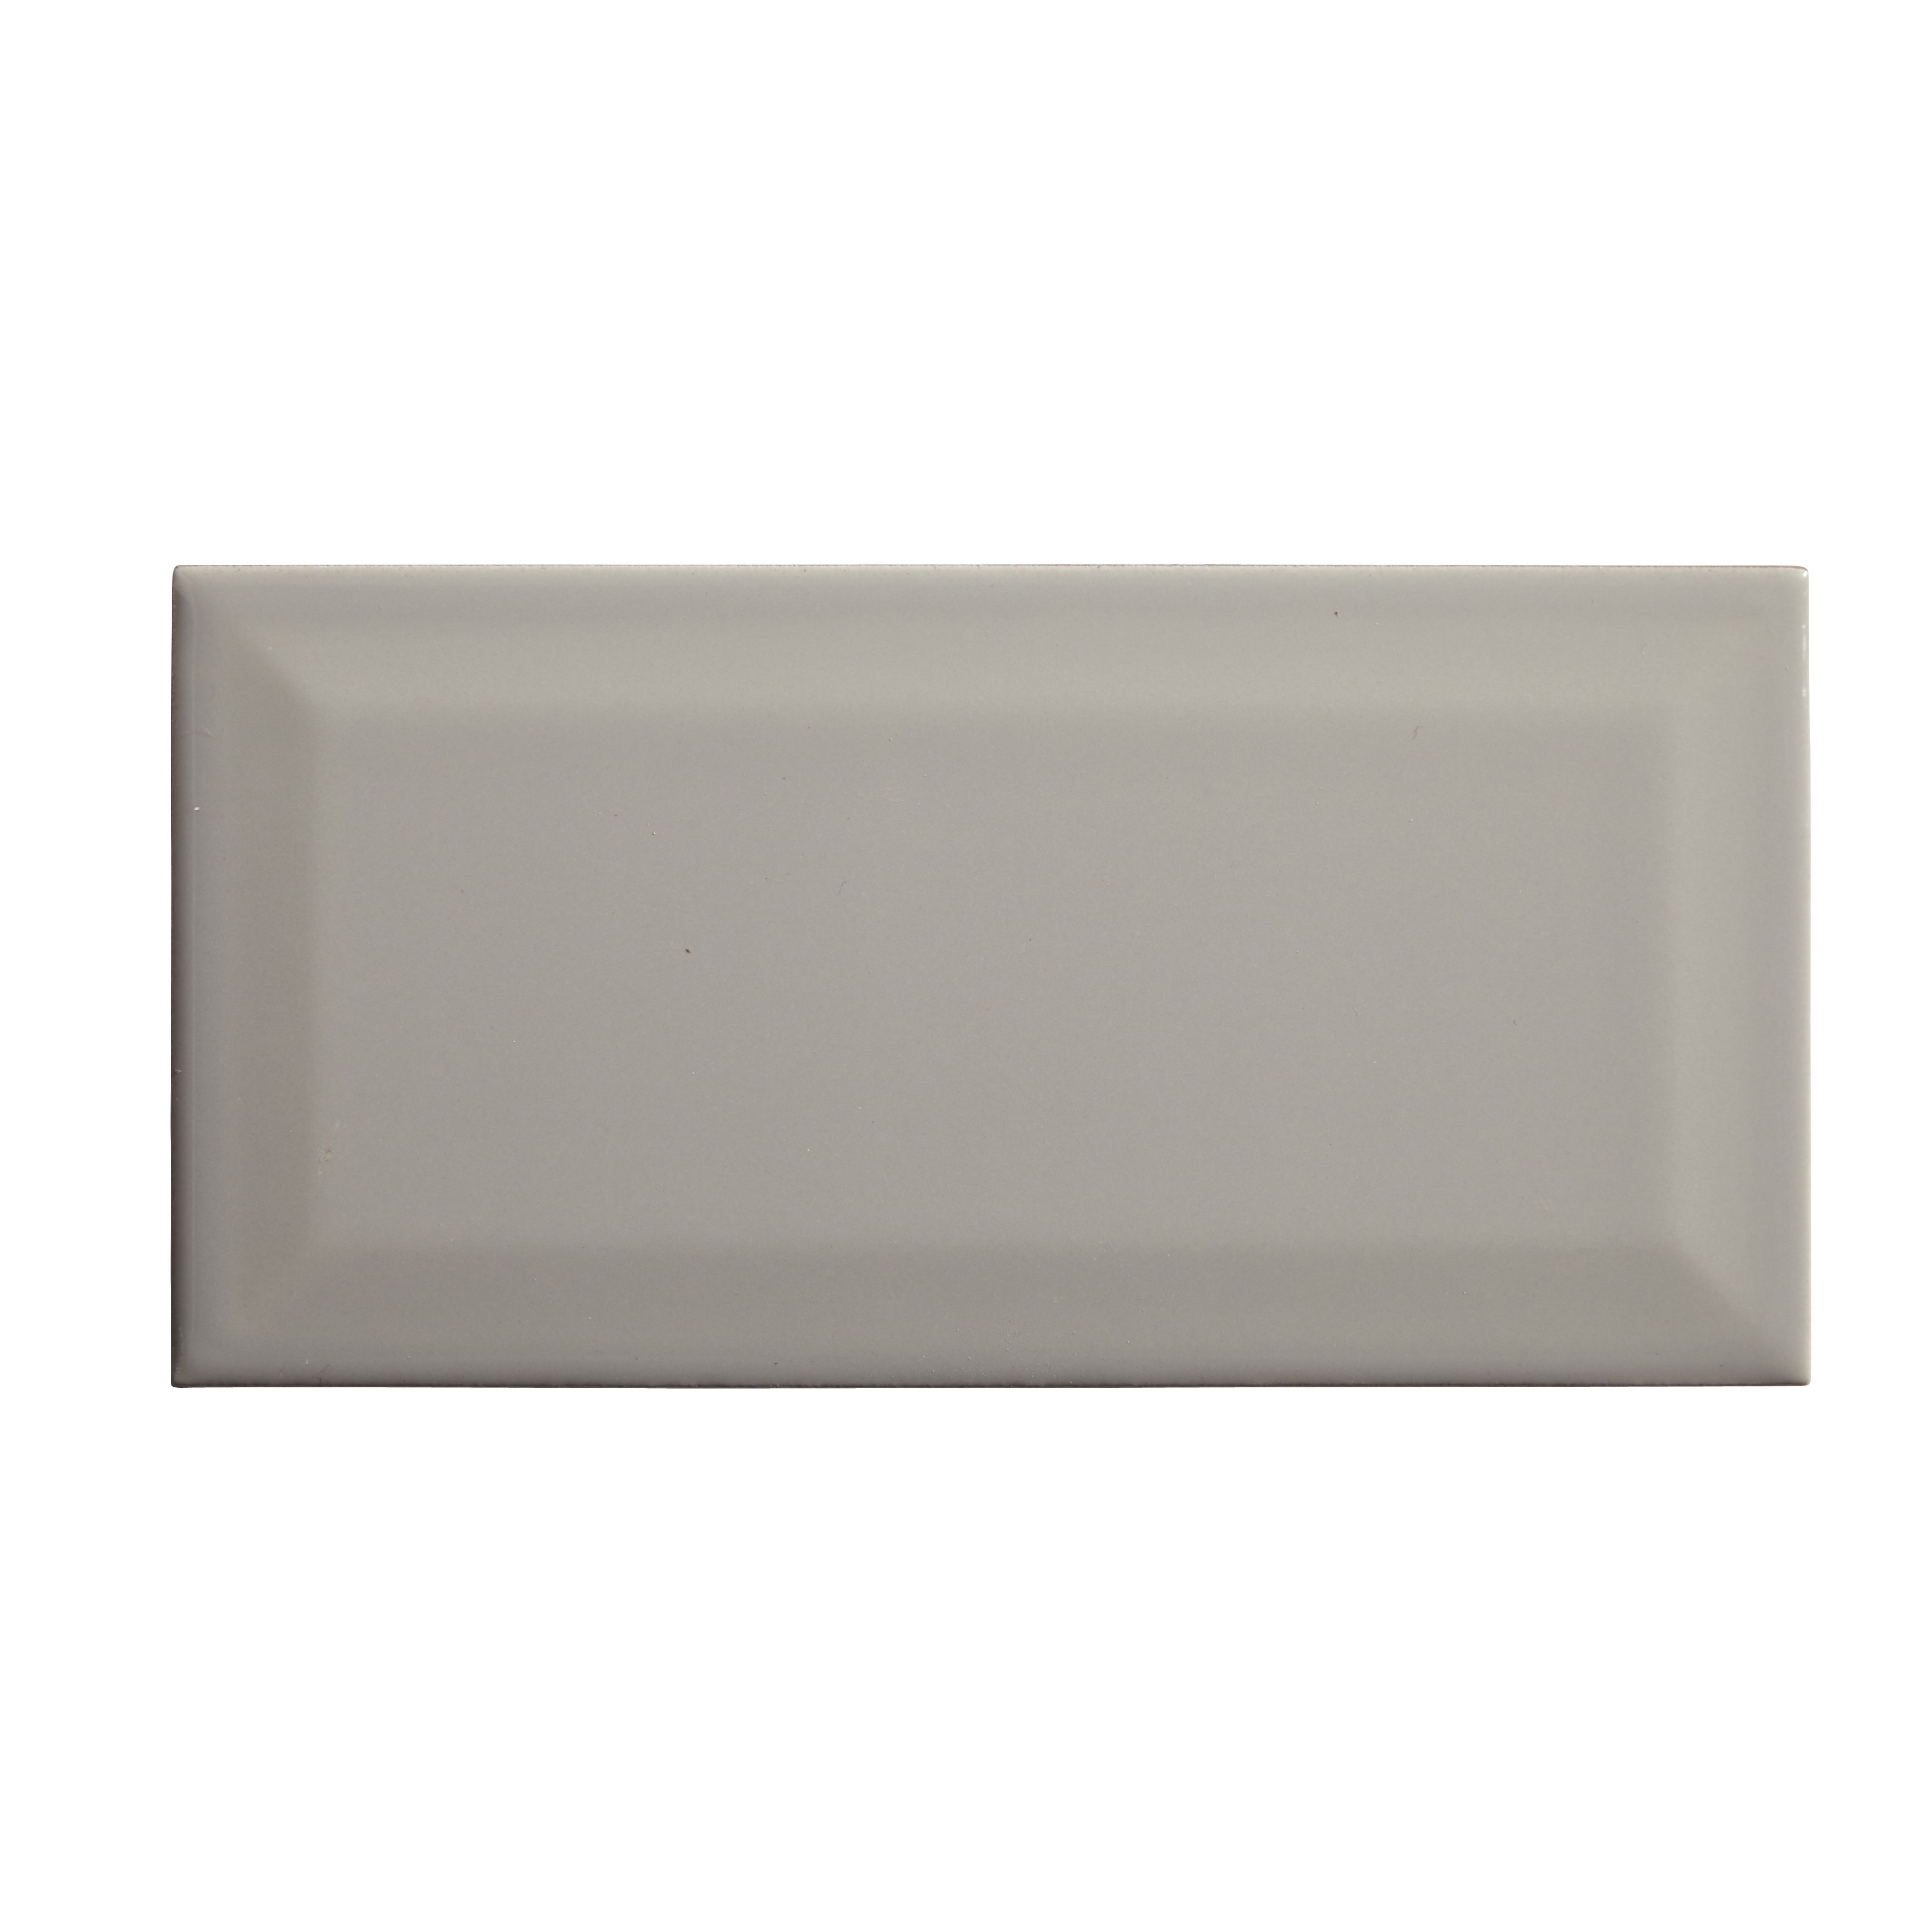 Trentie Taupe Gloss Ceramic Wall Tile L 200mm W 100mm